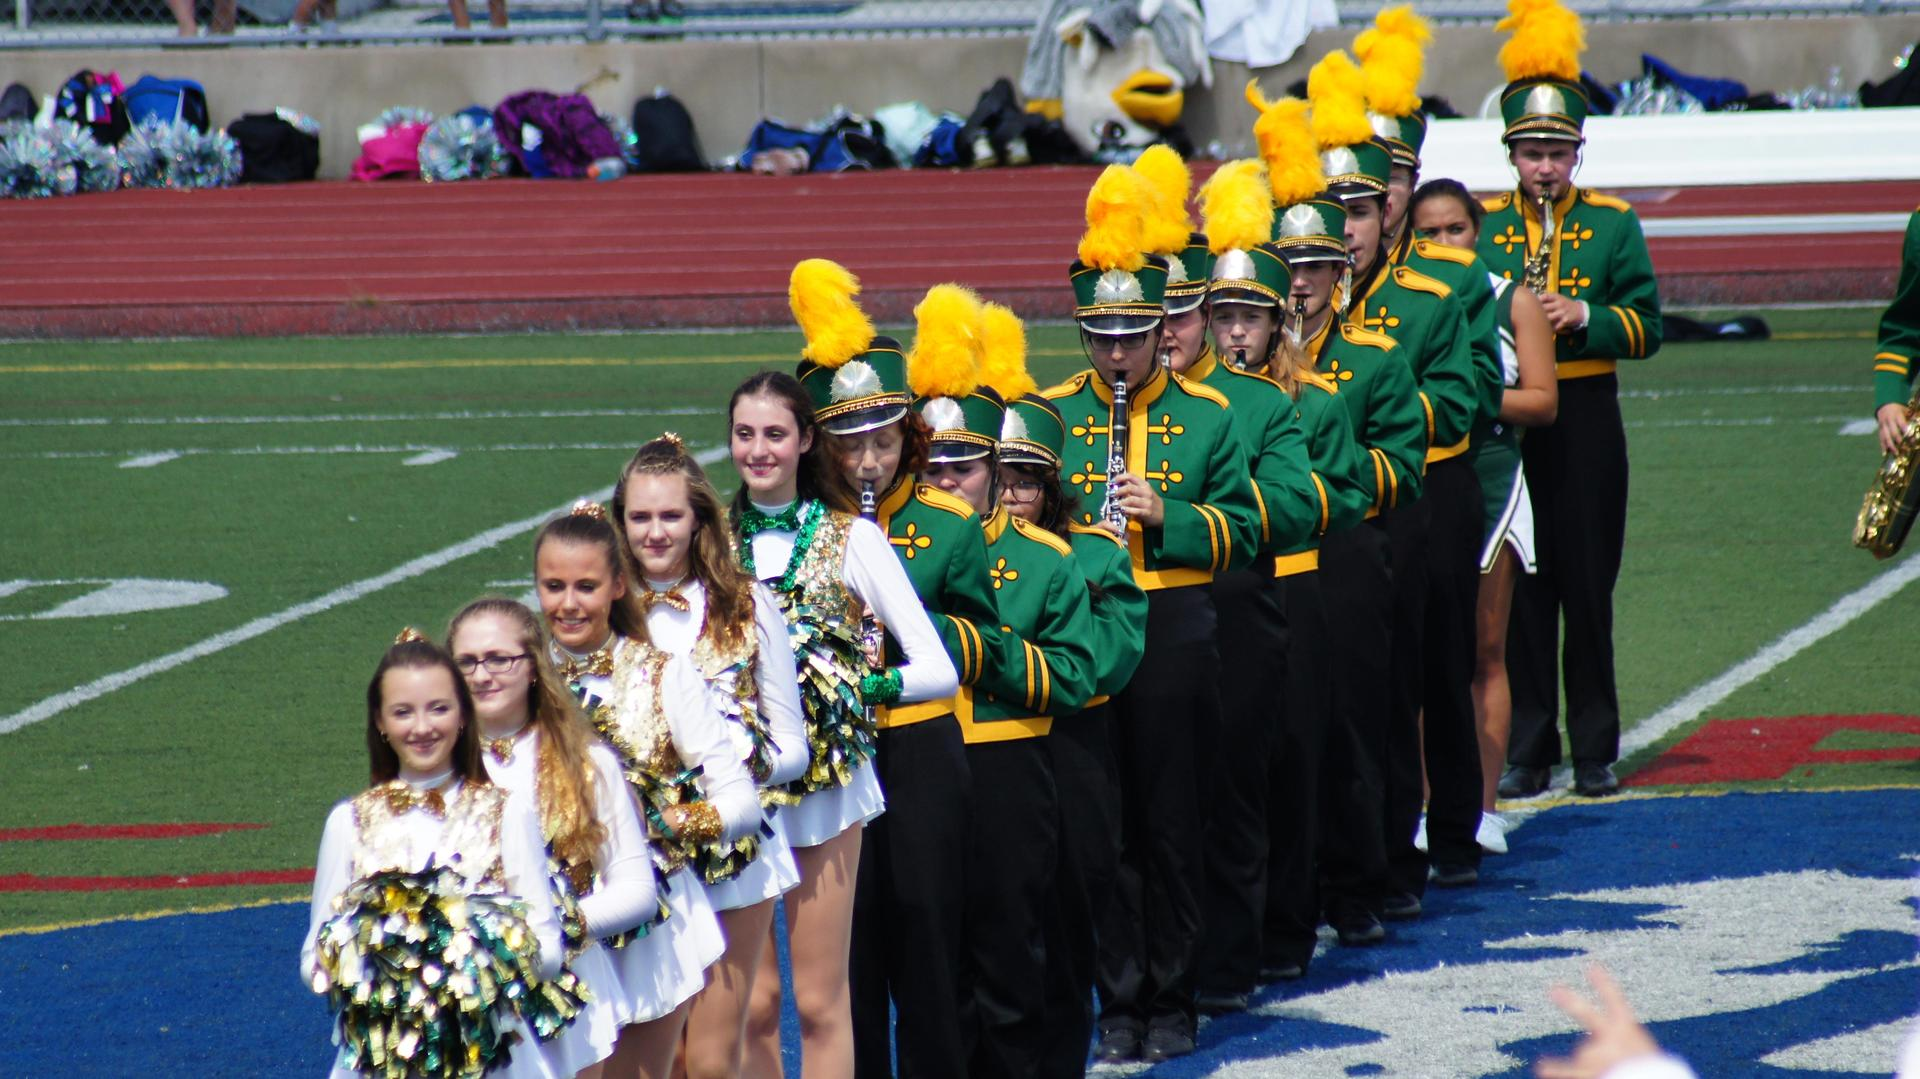 Marching Band performs at a football game